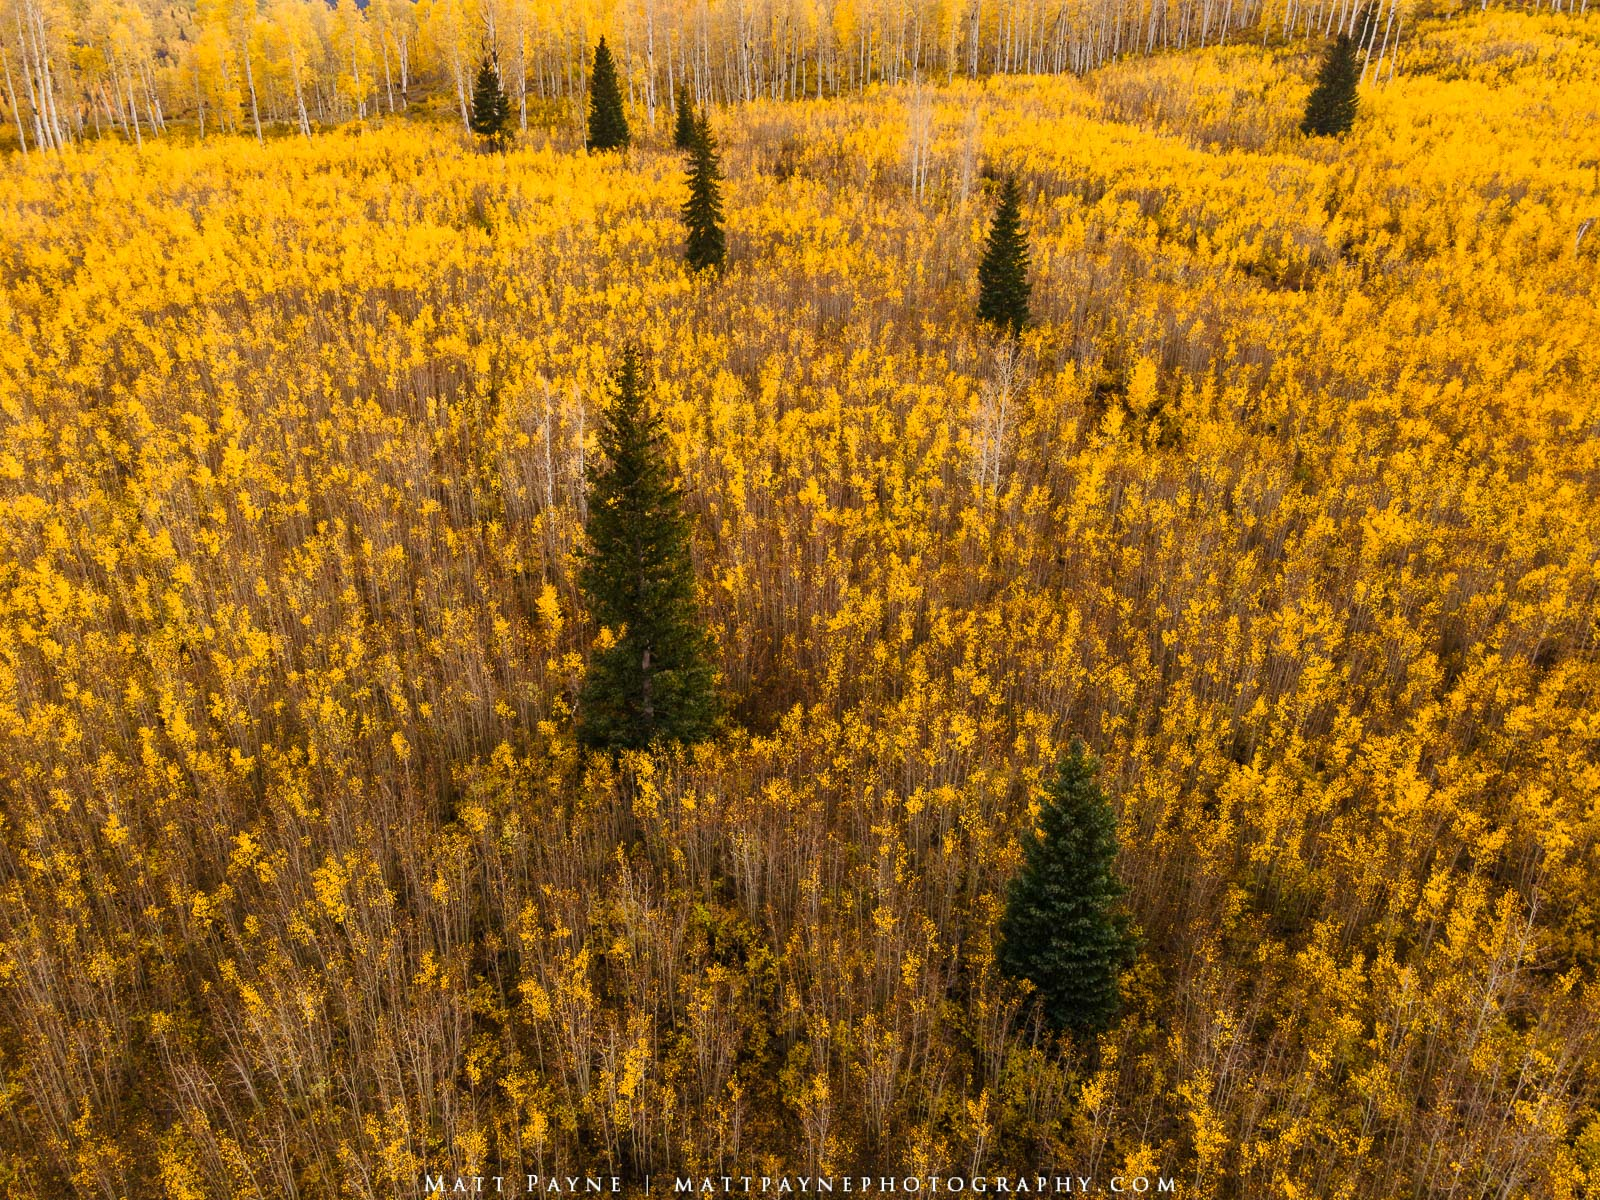 Here's a huge meadow filled with aspen tree saplings interspersed with pine trees as seen in fall in Colorado. What caused this...